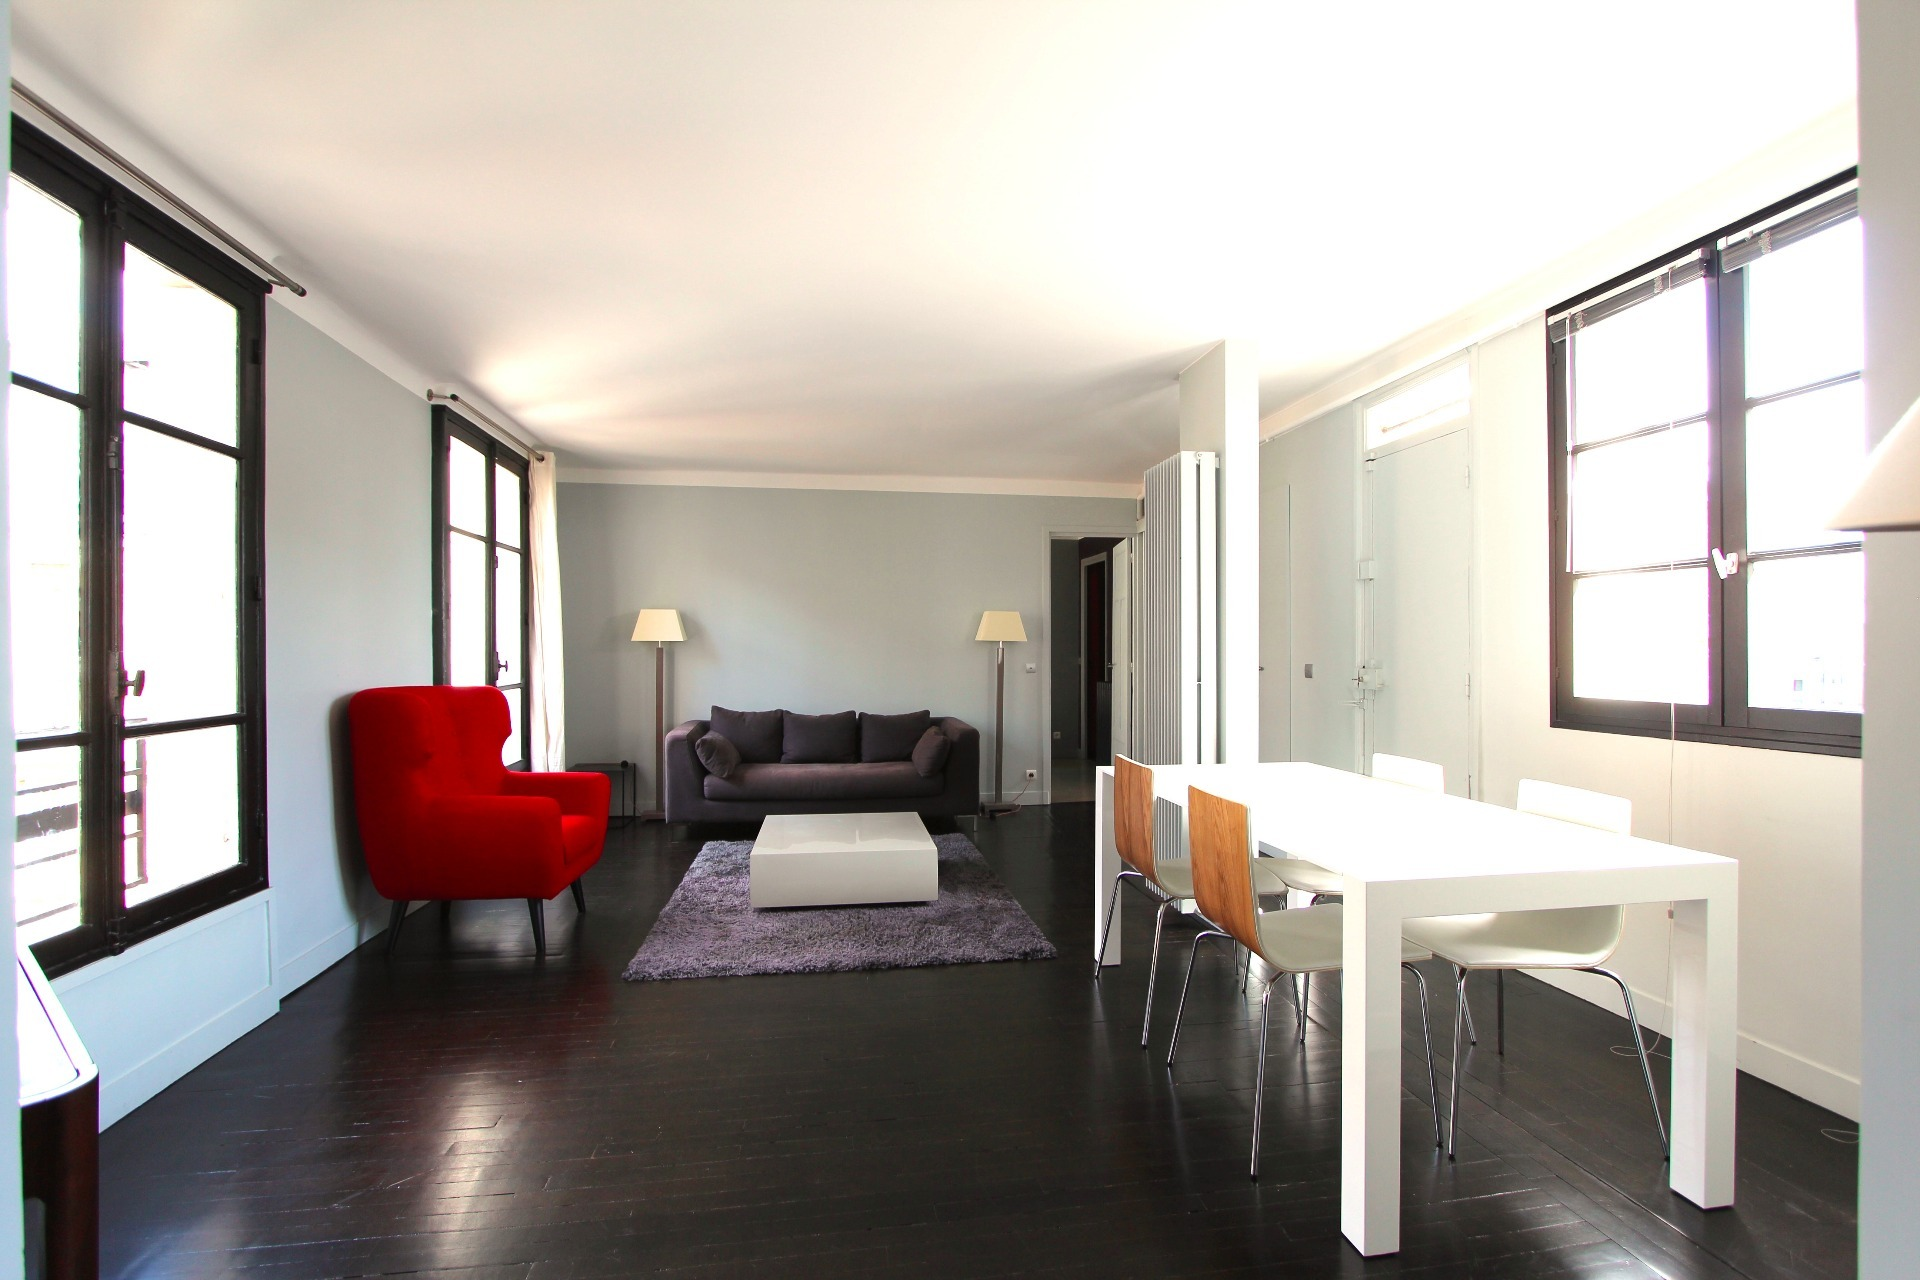 For Rent Furnished Very Nice 2 Room Apartment In Paris 16th